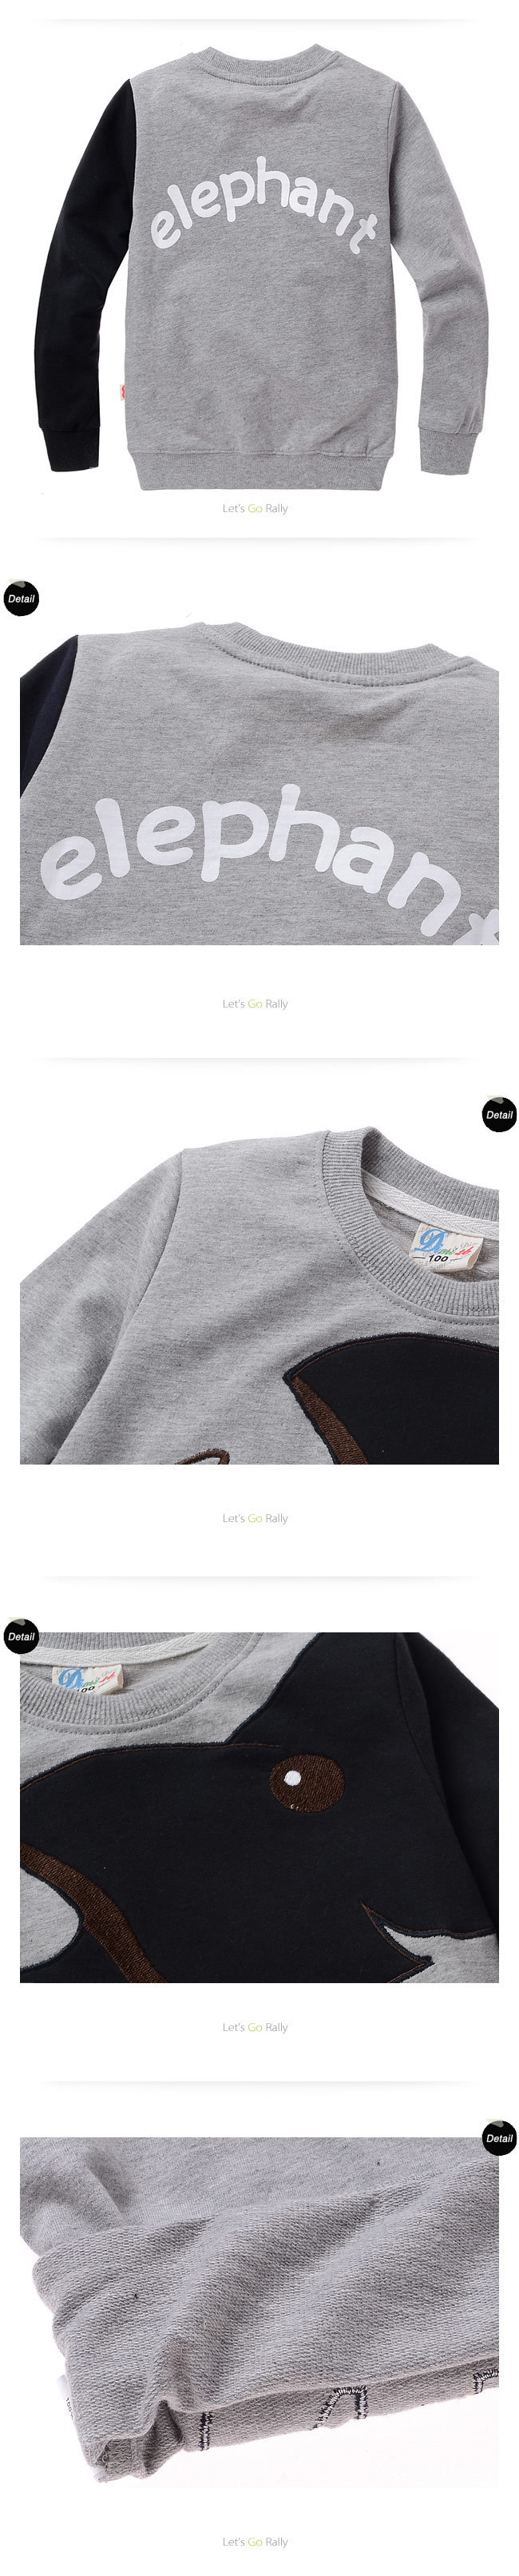 Boys And Girls Autumn Winter Kids Elephant Cartoon Long Sleeved T H16 2504 Ps24w Adapter For Fog Lights Drl Relay Wiring Harness Ebay Click Here Shirt Cotton Sweater Four Colour Children Clothes